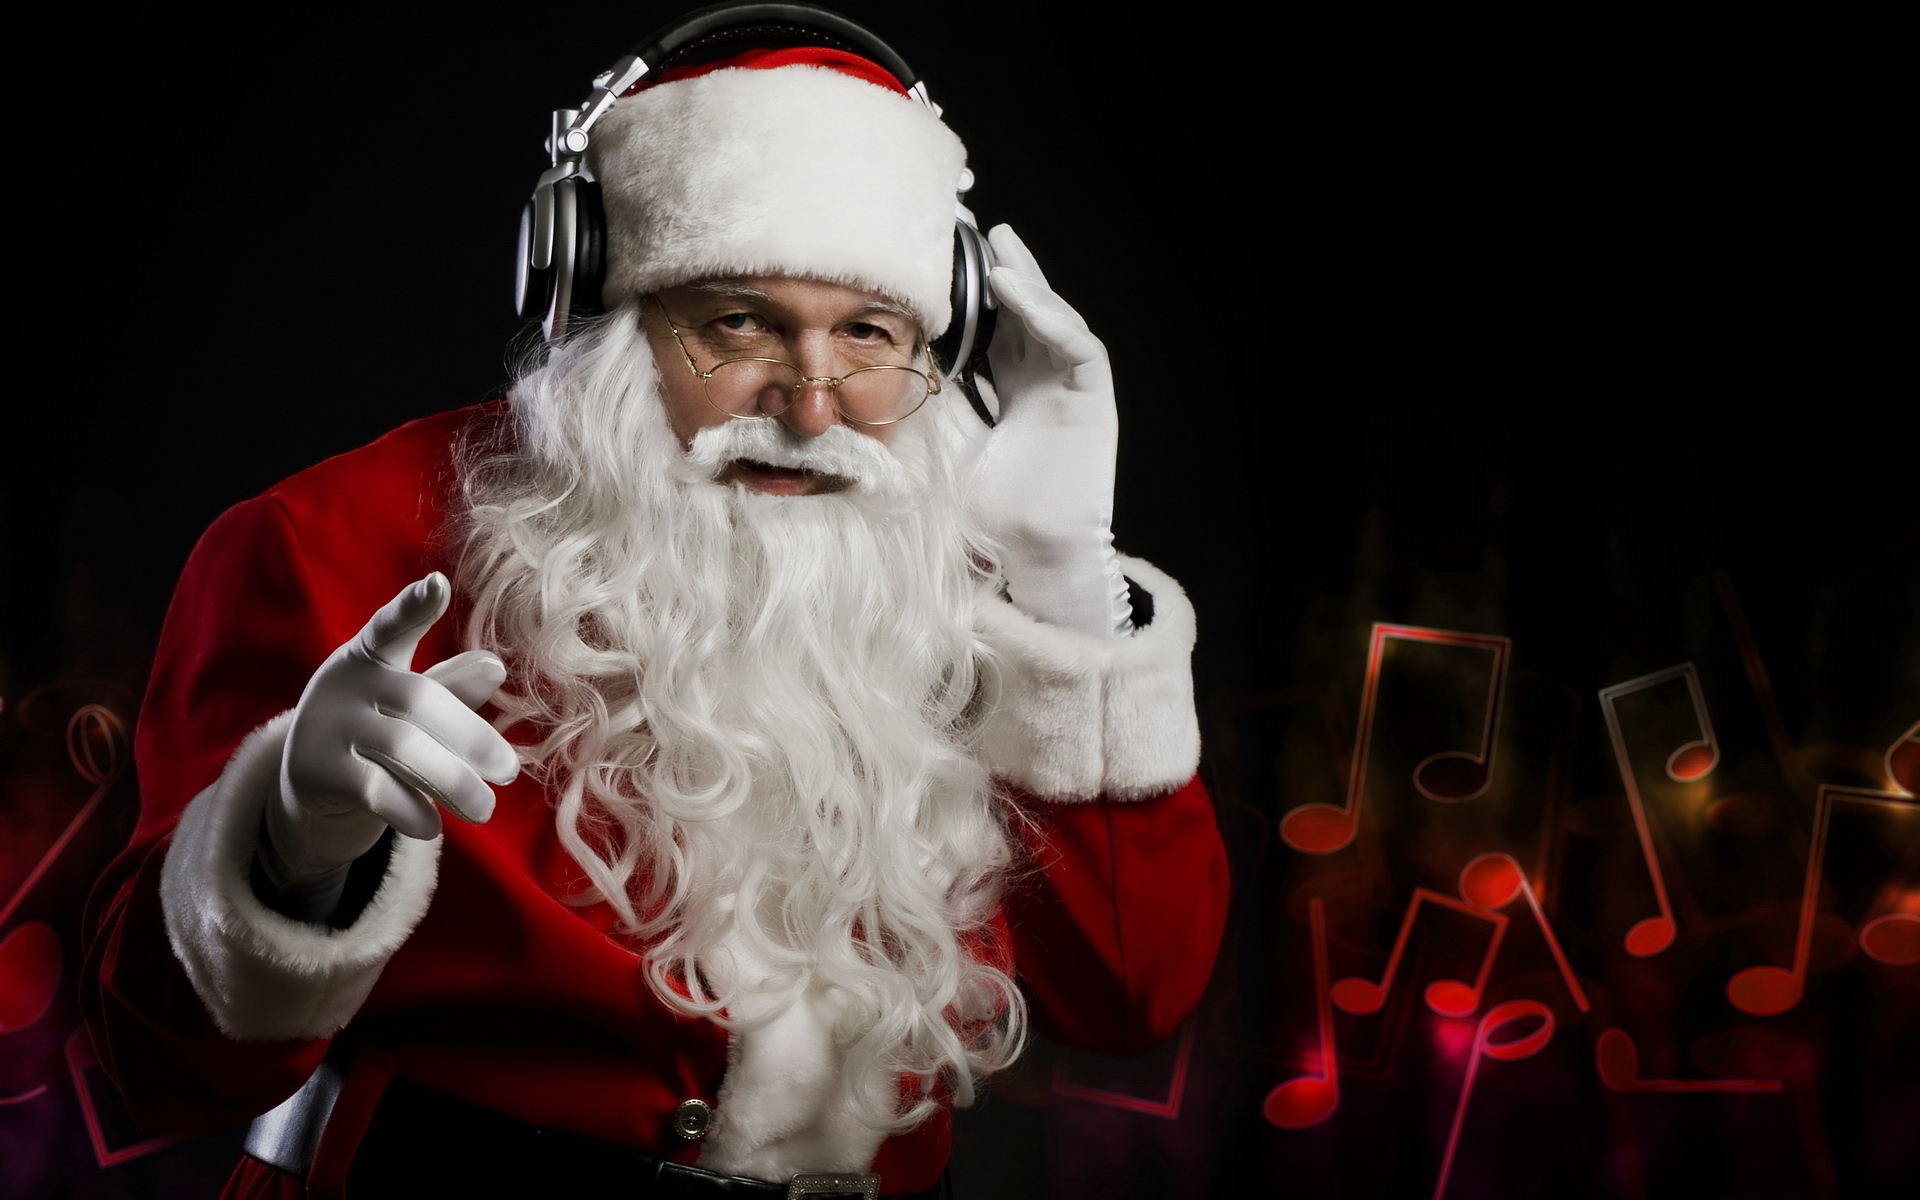 Santa Claus wearing headphones